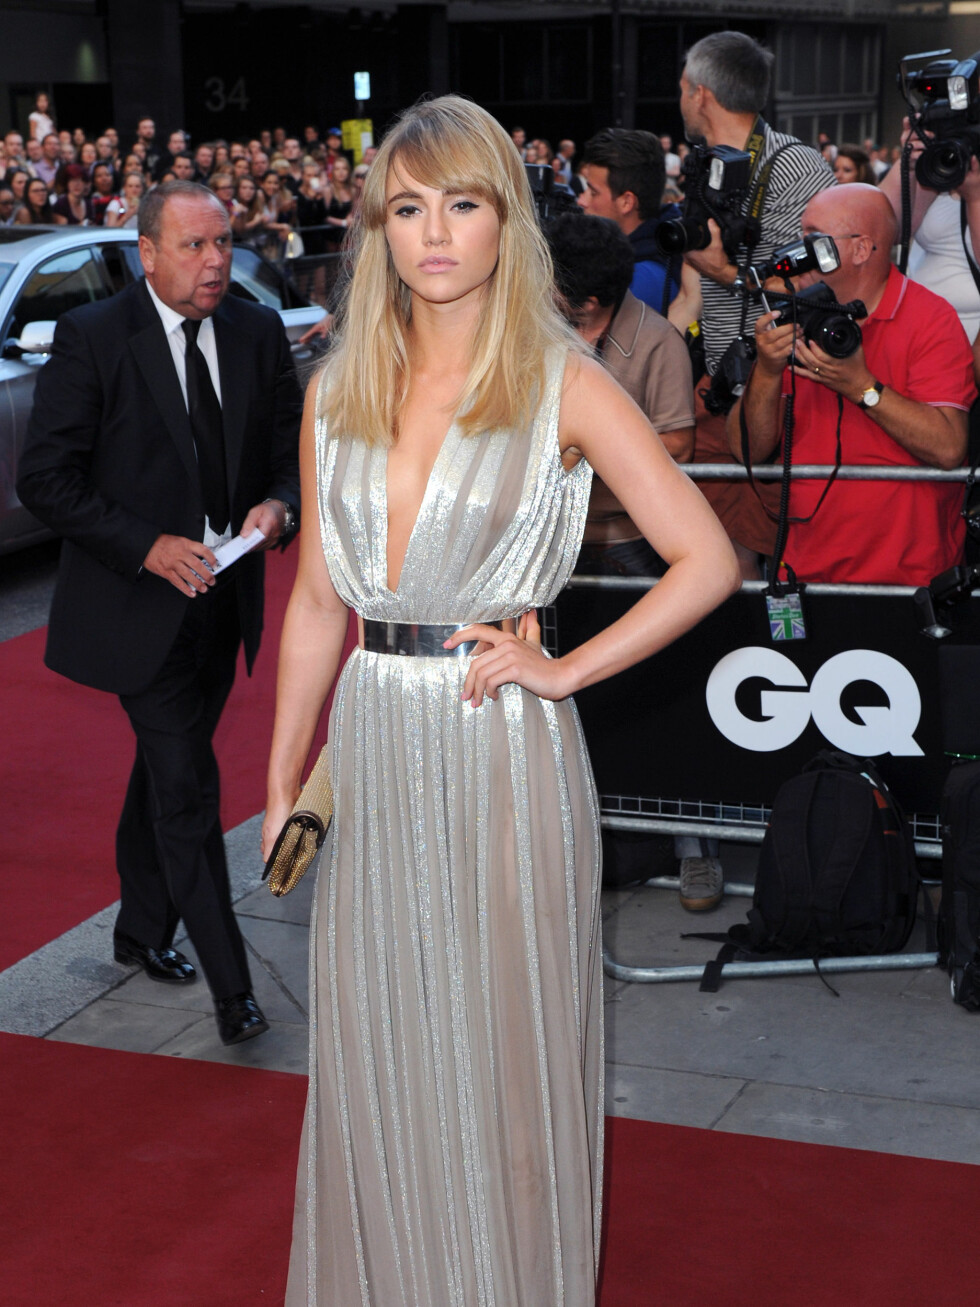 Suki Waterhouse Foto: WireImage/Getty Images/All Over Press